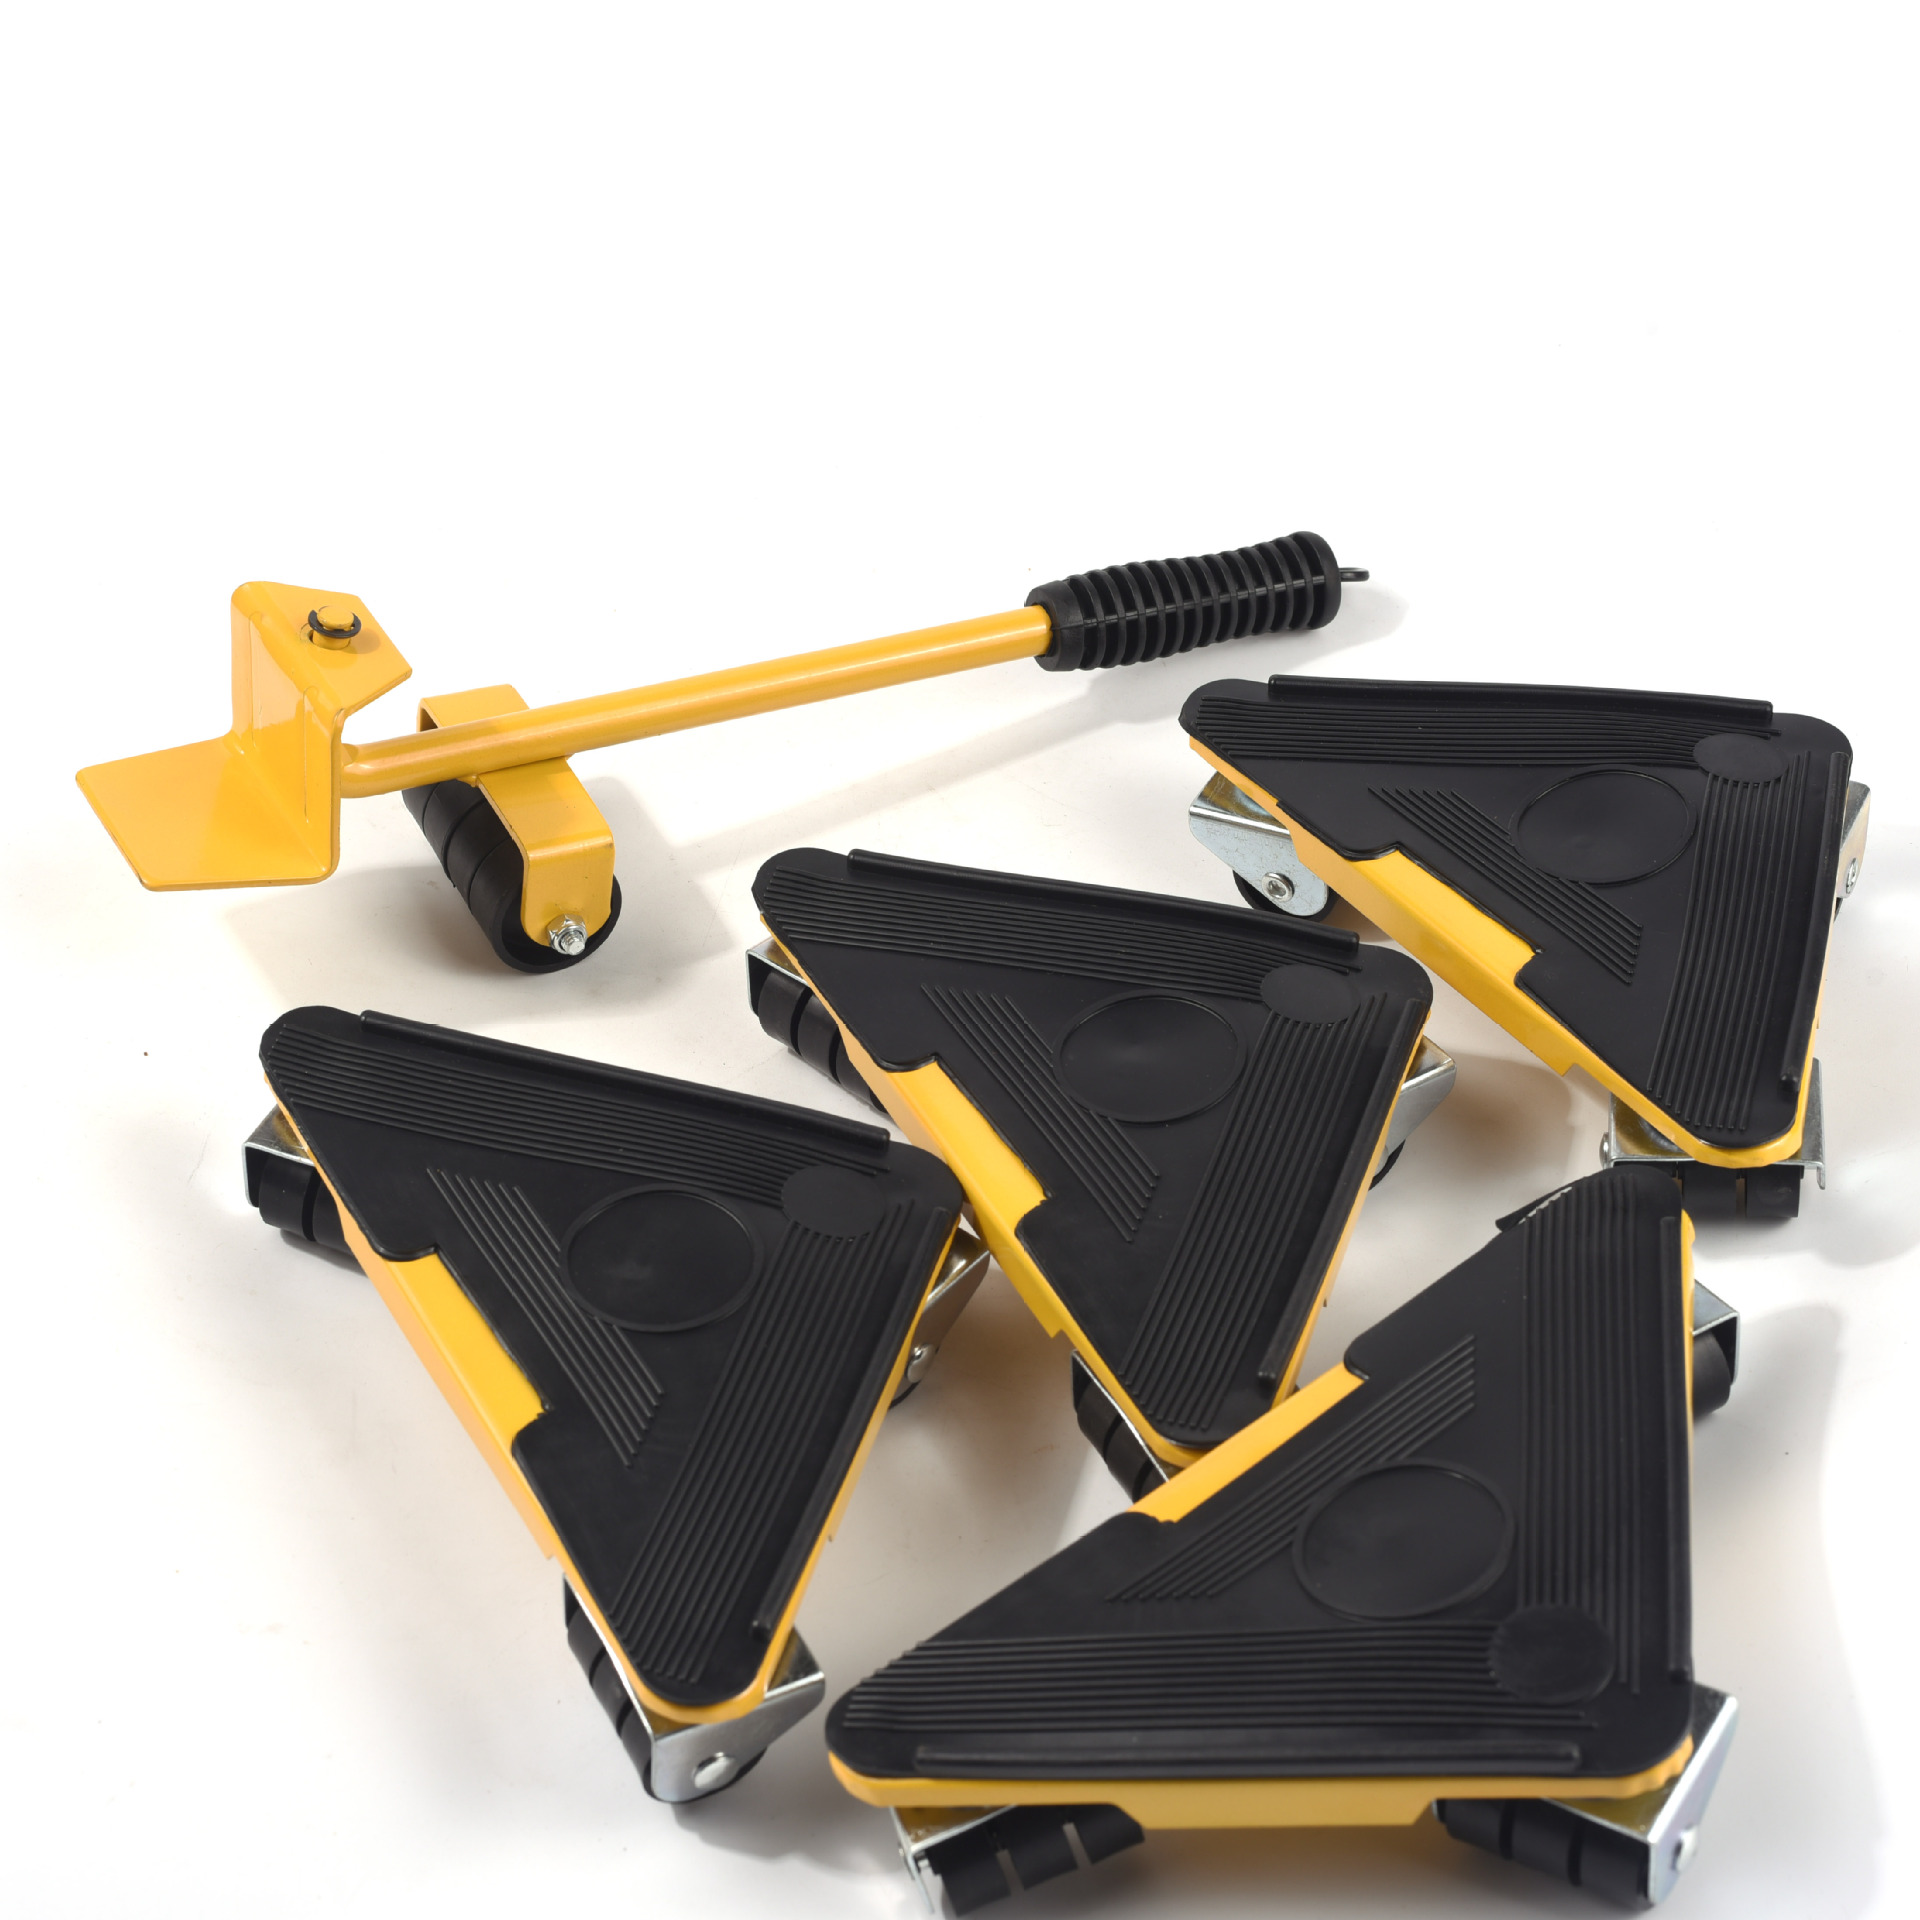 5-piece set of triangle iron mover portable portable mover heavy object moving tool furniture moving цена и фото